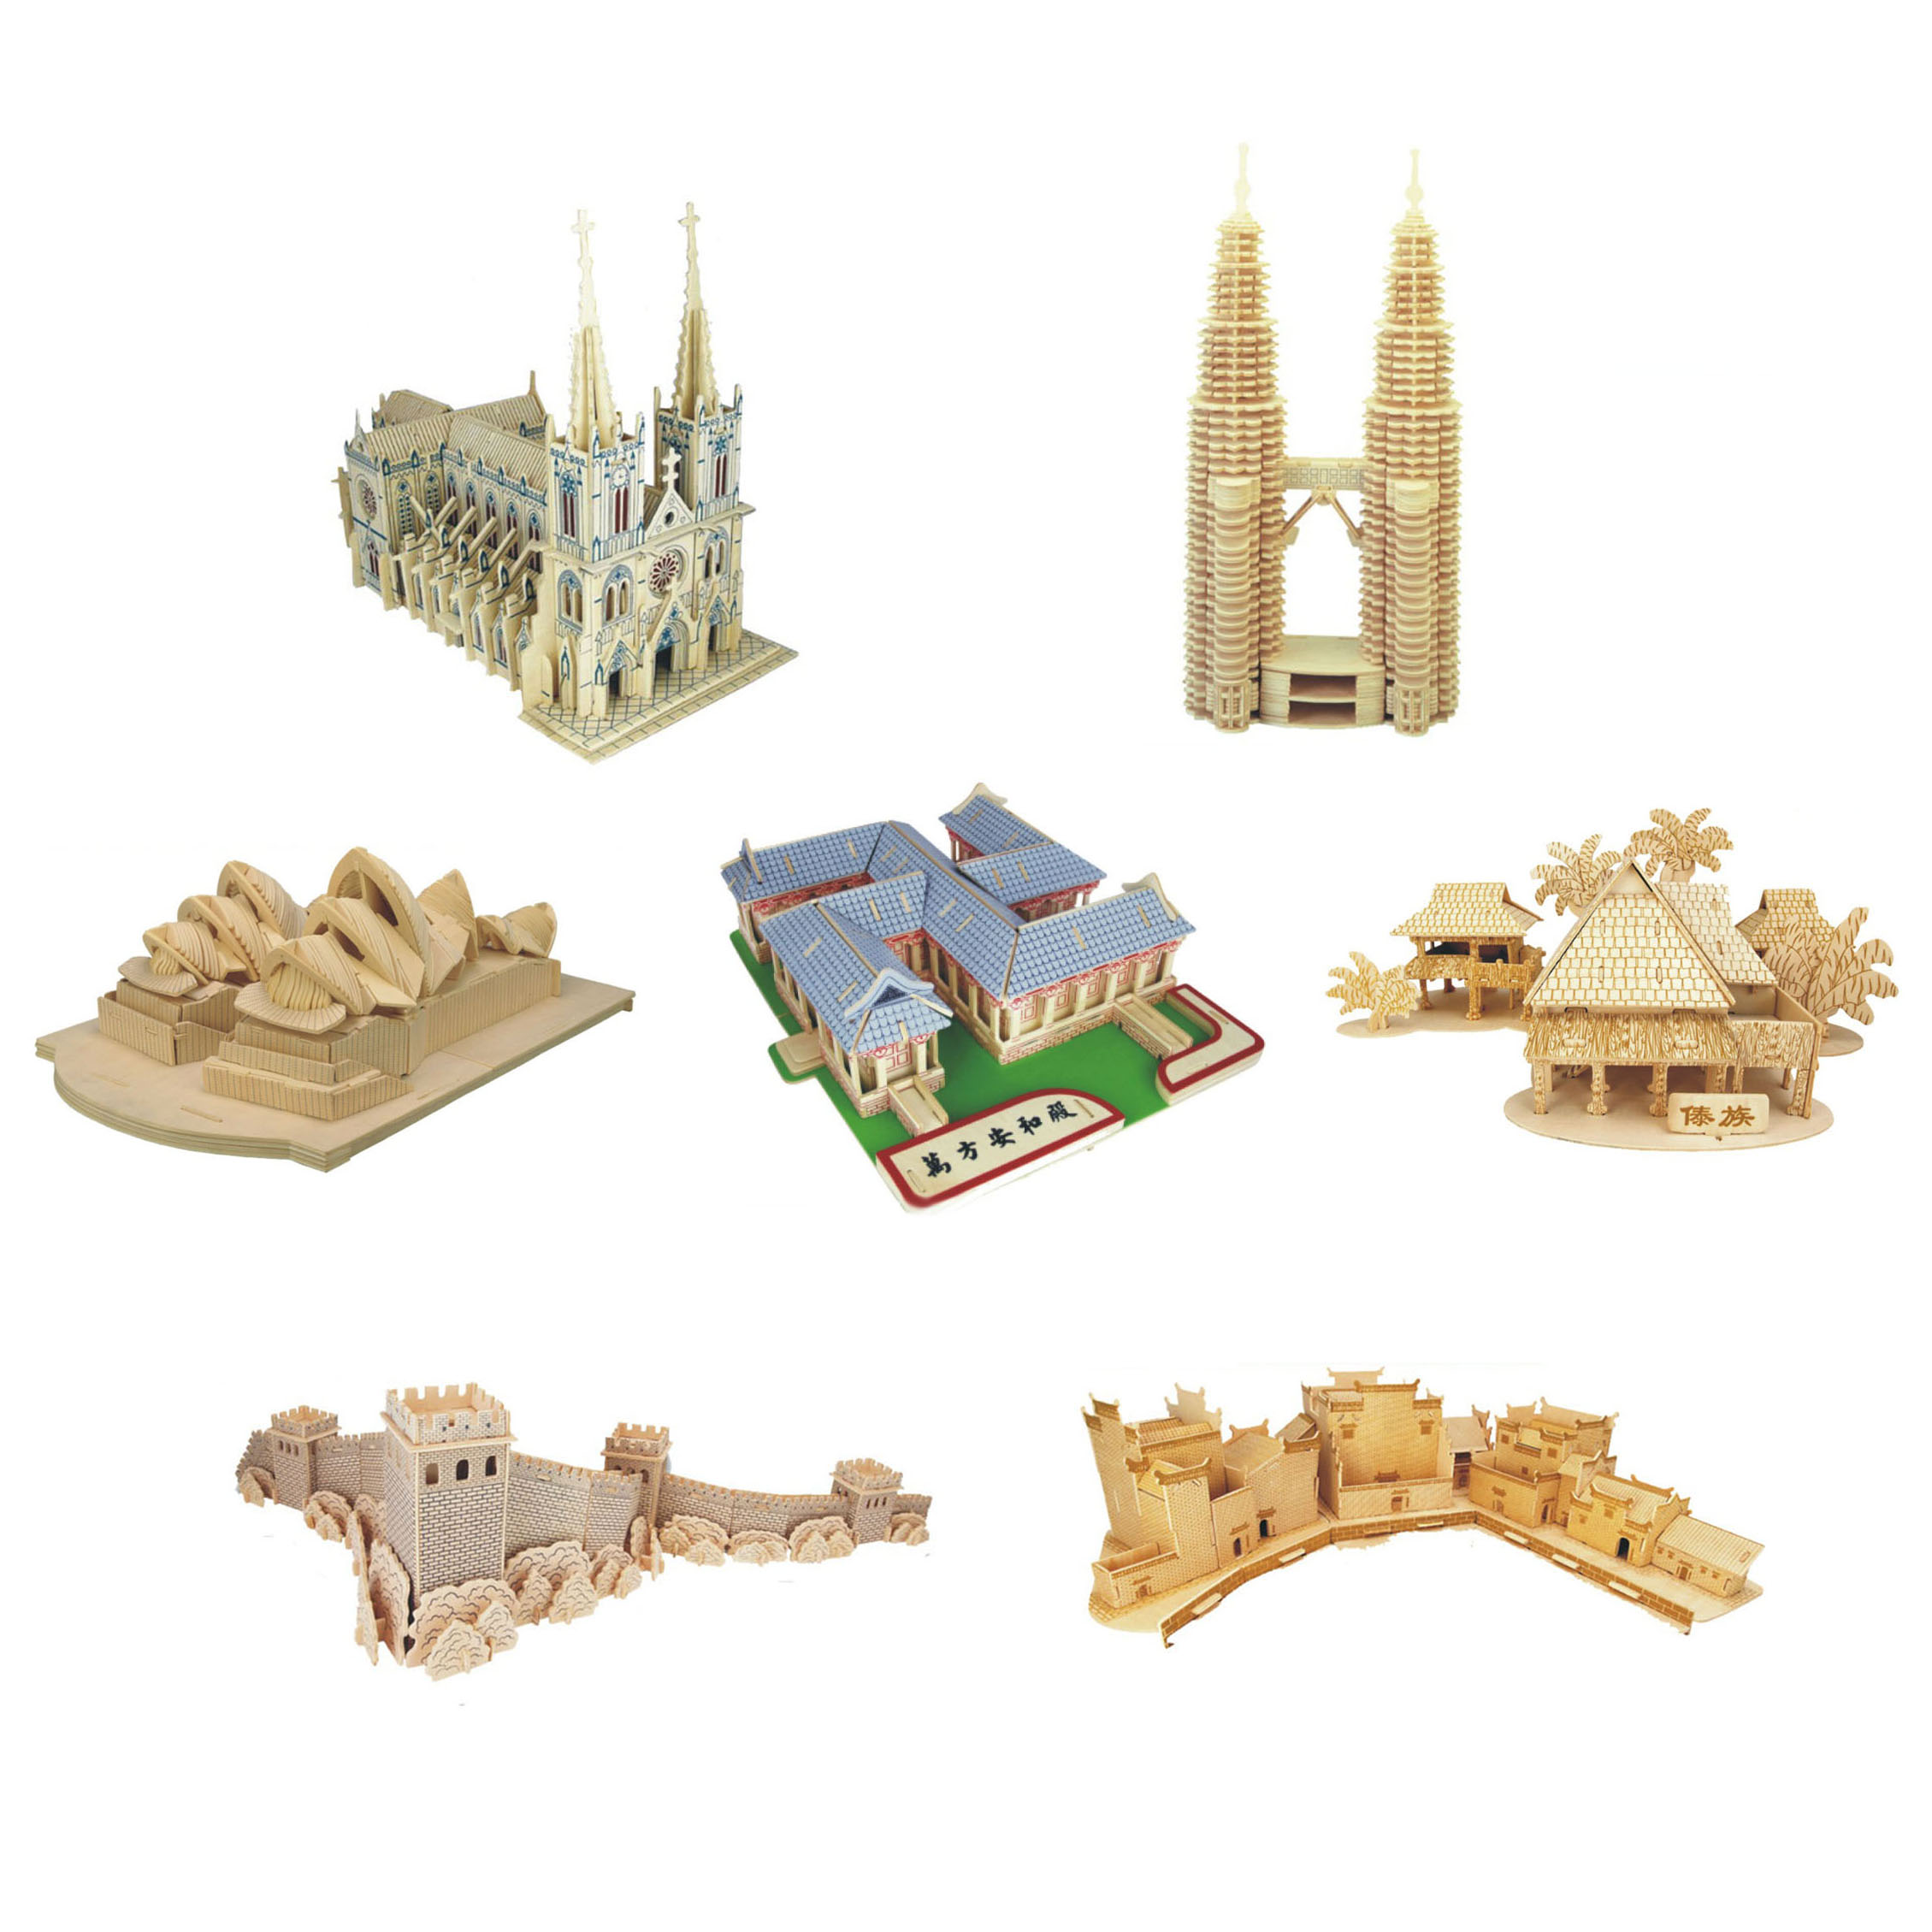 Chanycore Baby Learning Educational Wooden Toys 3D Puzzle Building House Church Great Wall Tower Opera Palace Kids Gifts 4313 напольная плитка emigres palace opera lila 31 6x31 6